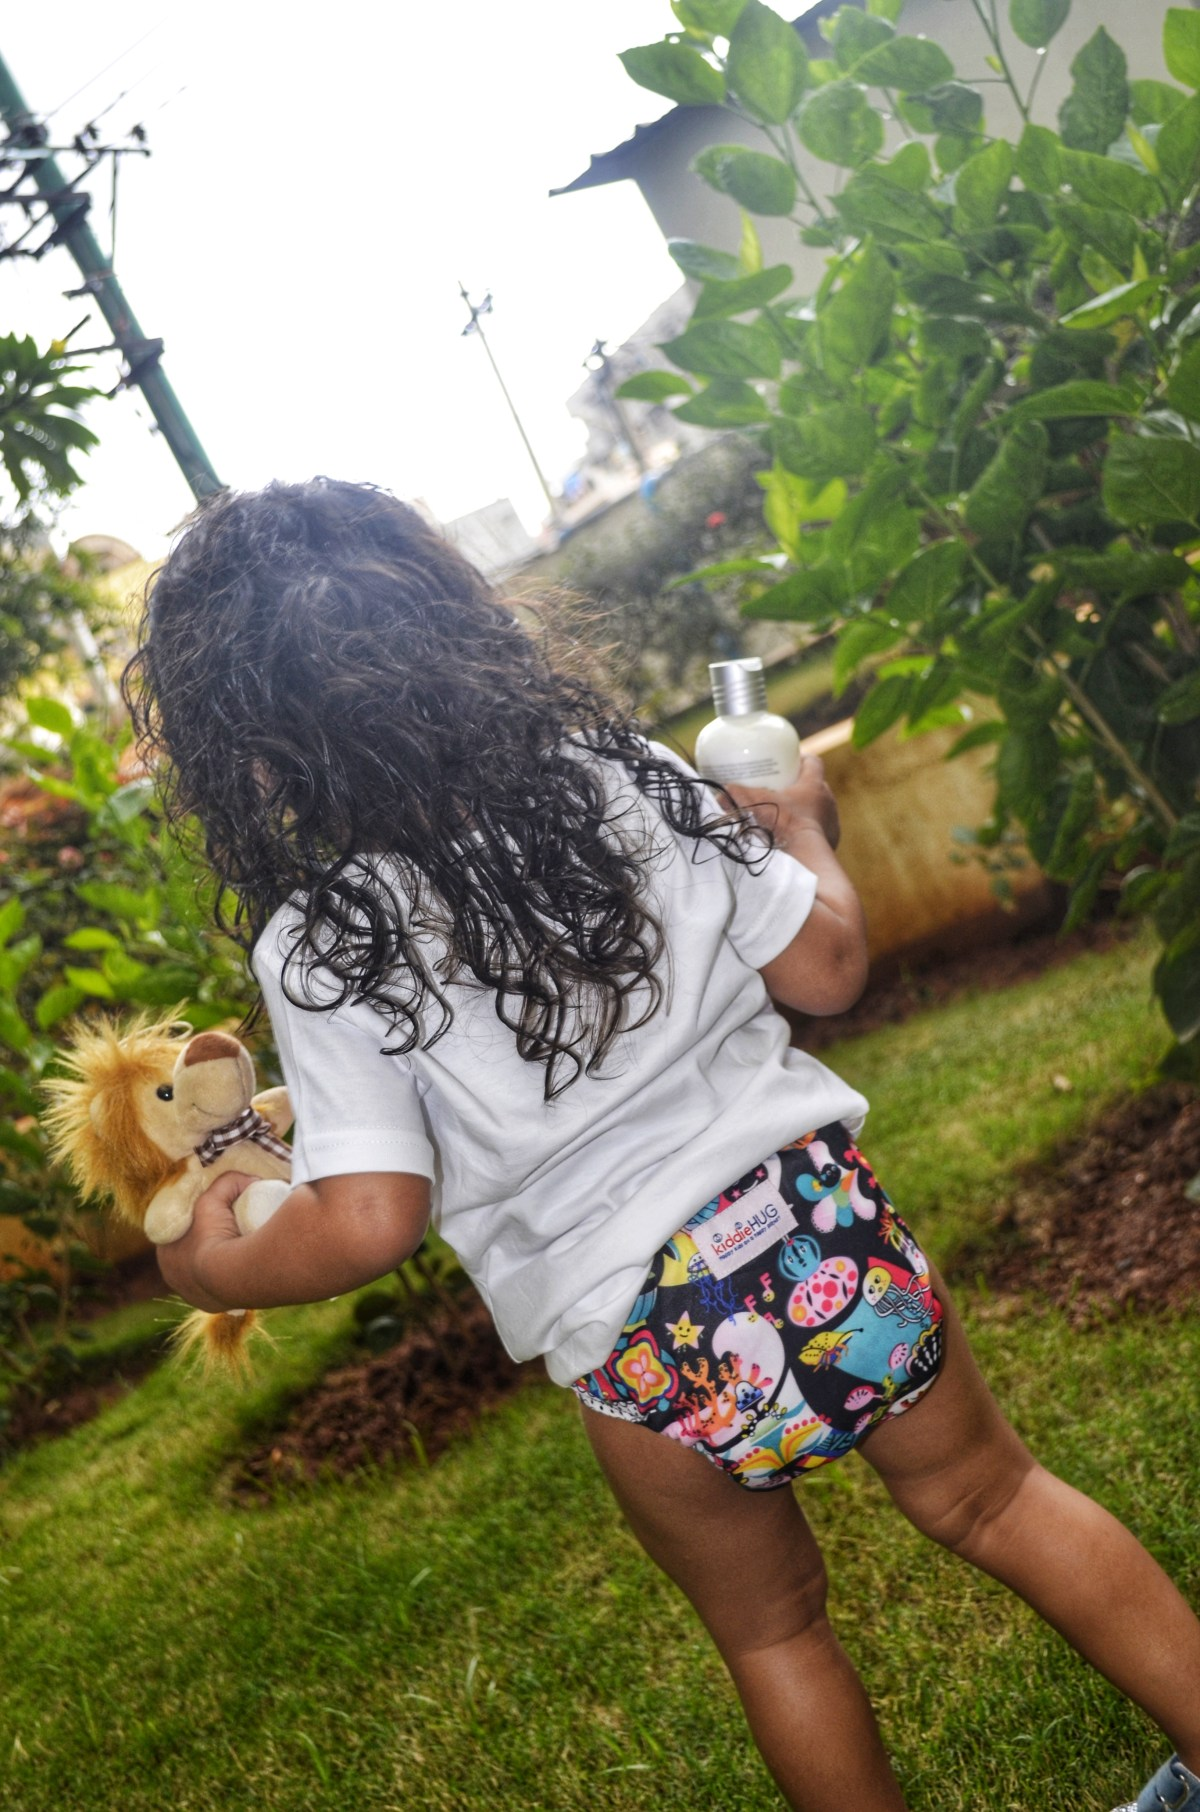 KiddieHug- Cloth Diapering Made Easy